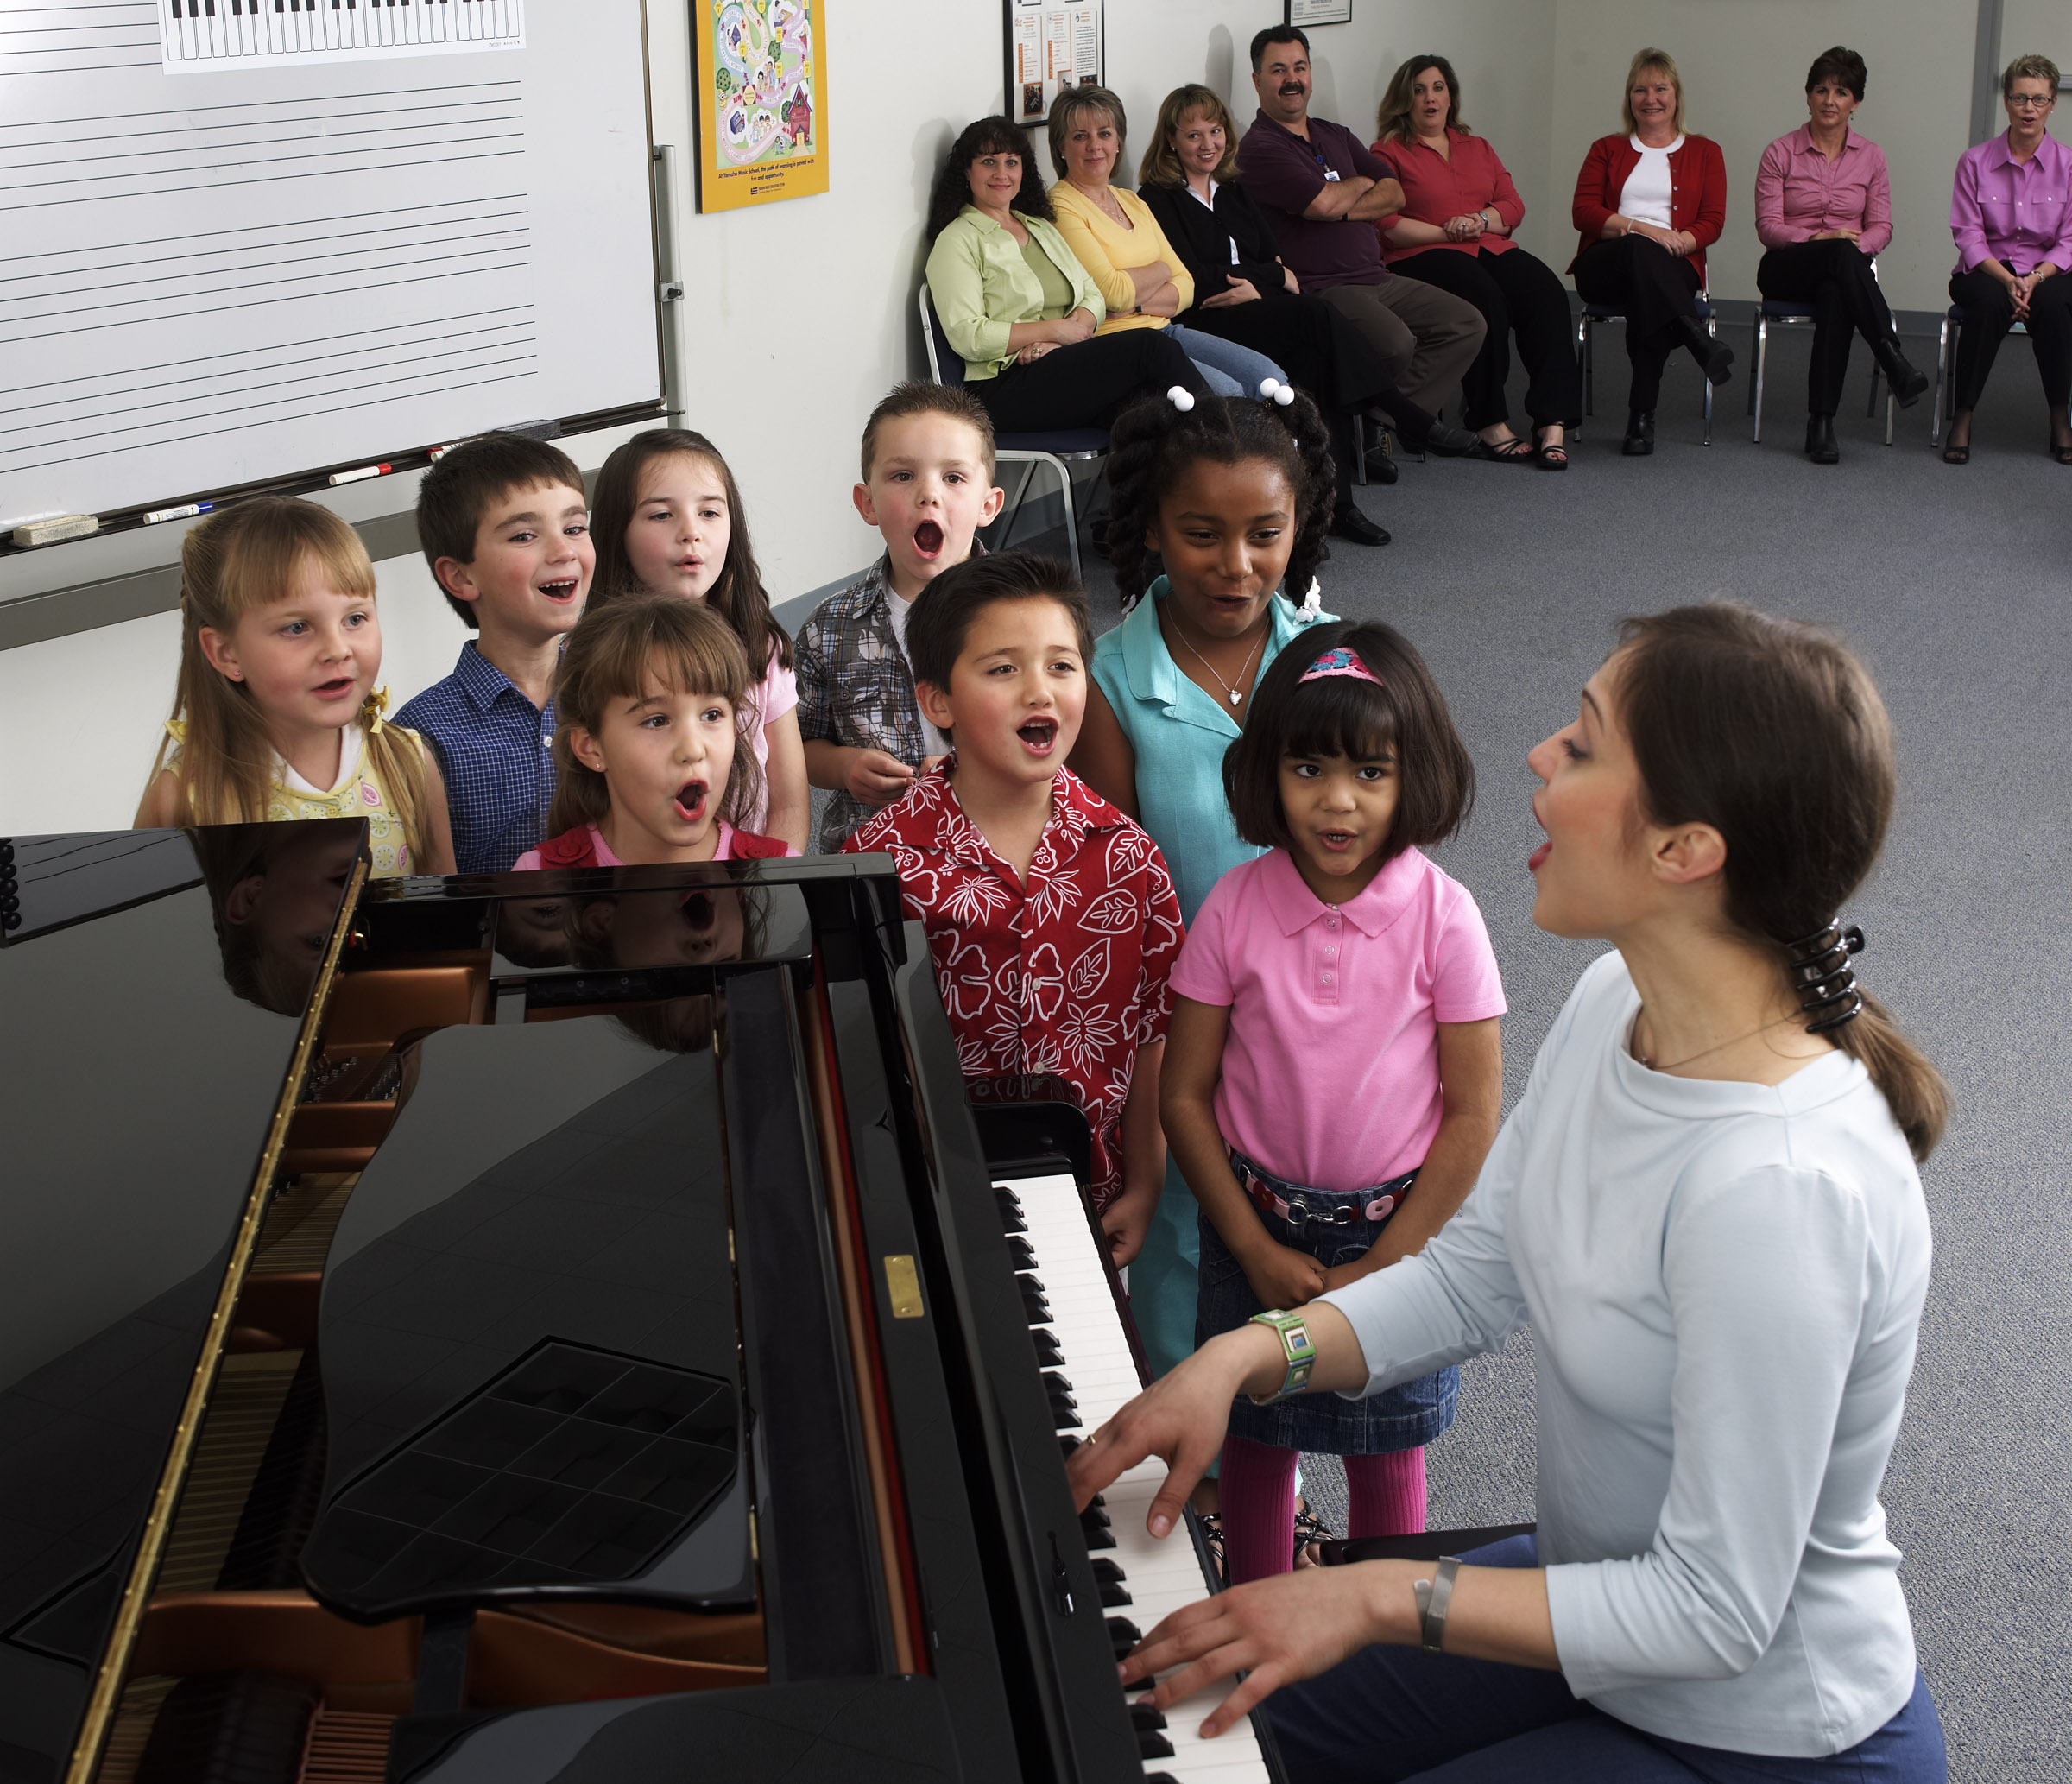 YMES_Class_singing_at_piano_20120925032215707